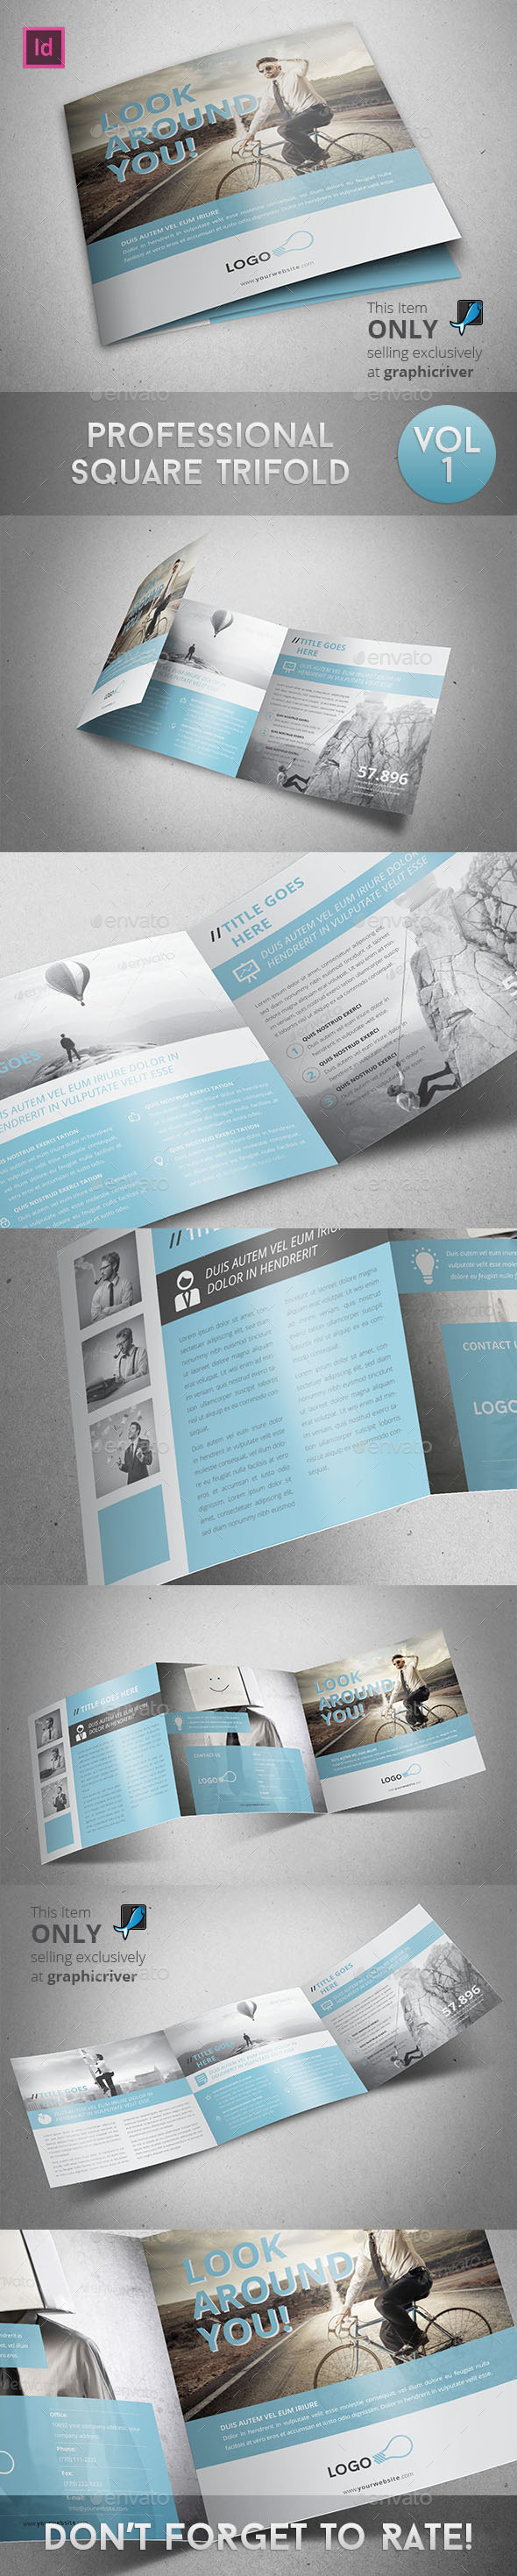 Professional Square Trifold - Corporate Brochures